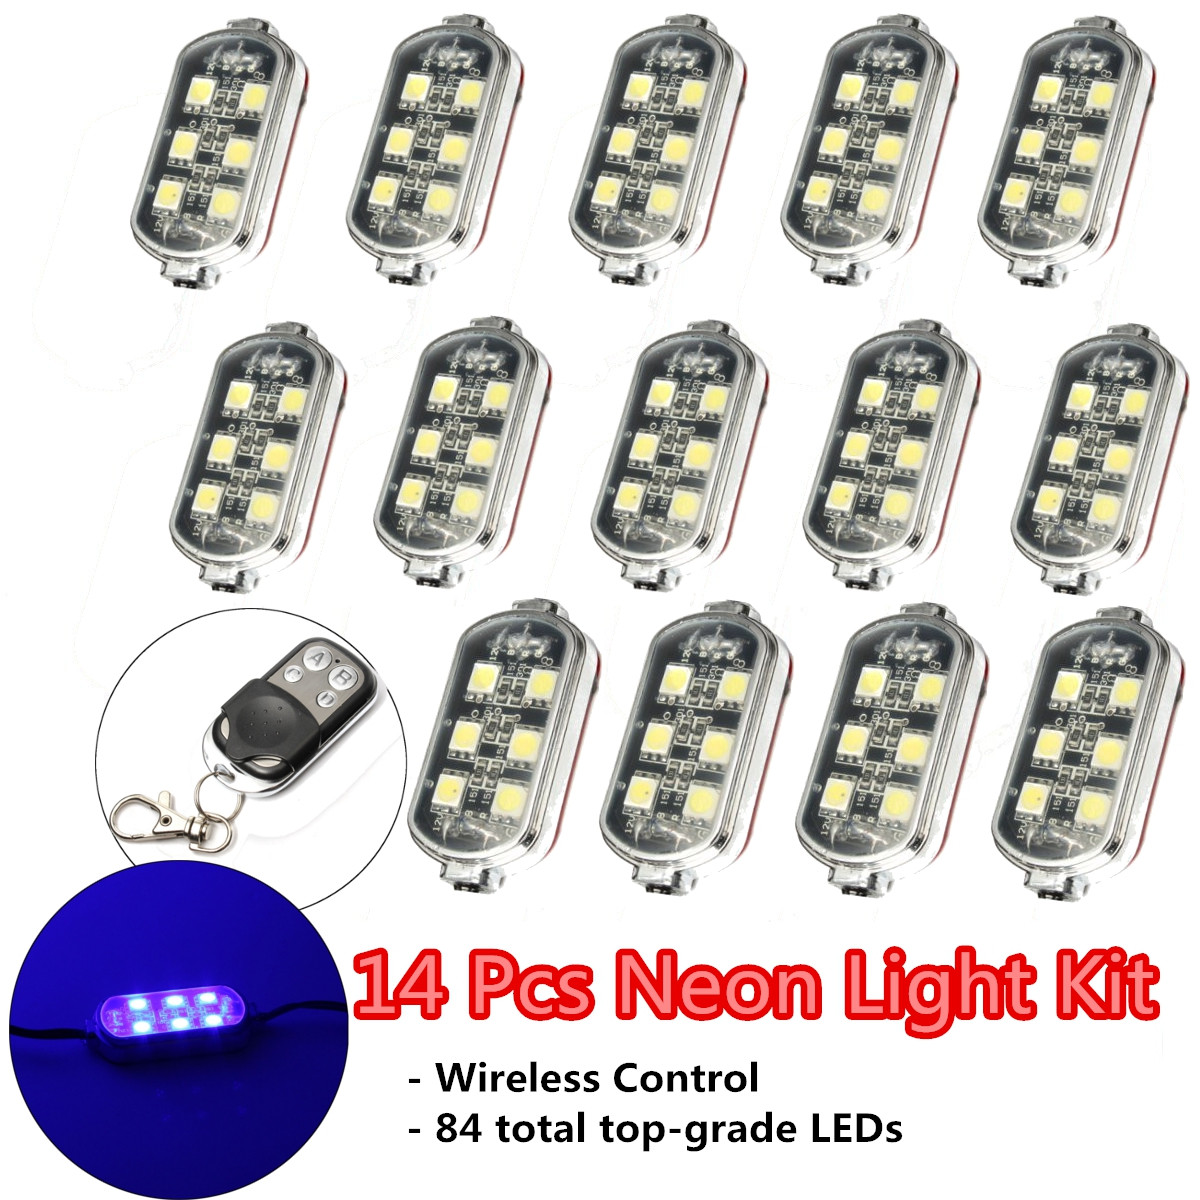 14 Pcs Blue Wireless Control Remote 84LED Neon Accent Lights Motorcycle Bike